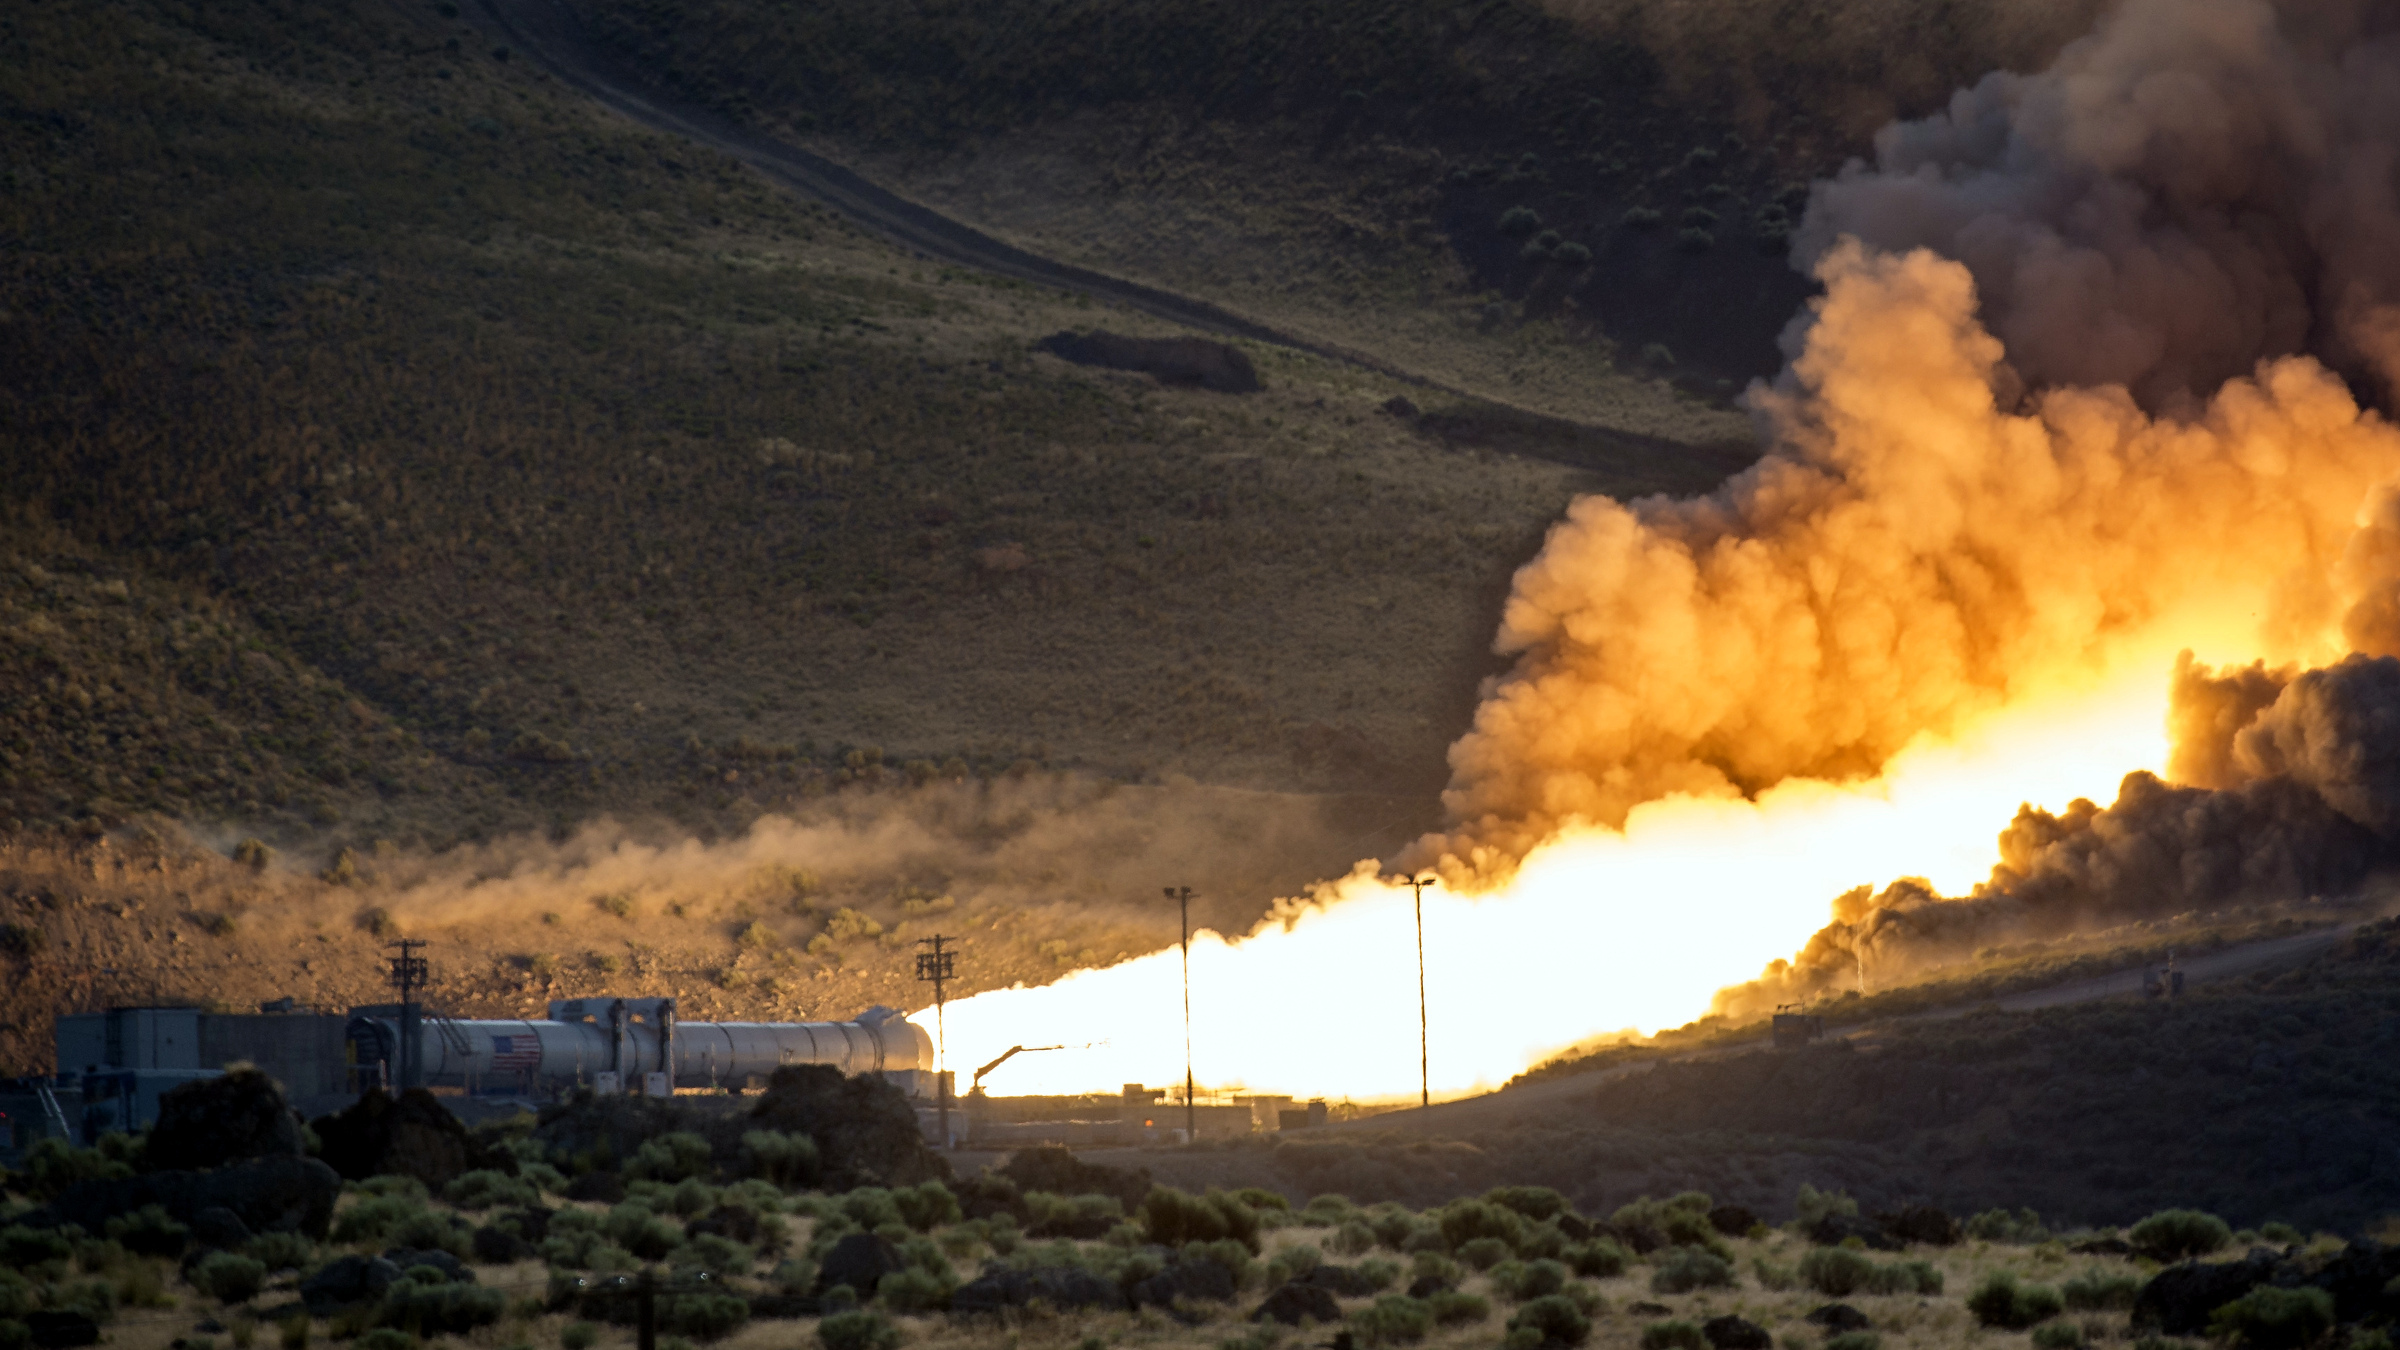 The second and final qualification motor (QM-2) test for the Space Launch System's booster is seen, Tuesday, June 28, 2016, at Orbital ATK Propulsion Systems test facilities in Promontory, Utah. During the Space Launch System flight the boosters will provide more than 75 percent of the thrust needed to escape the gravitational pull of the Earth, the first step on NASA's Journey to Mars.